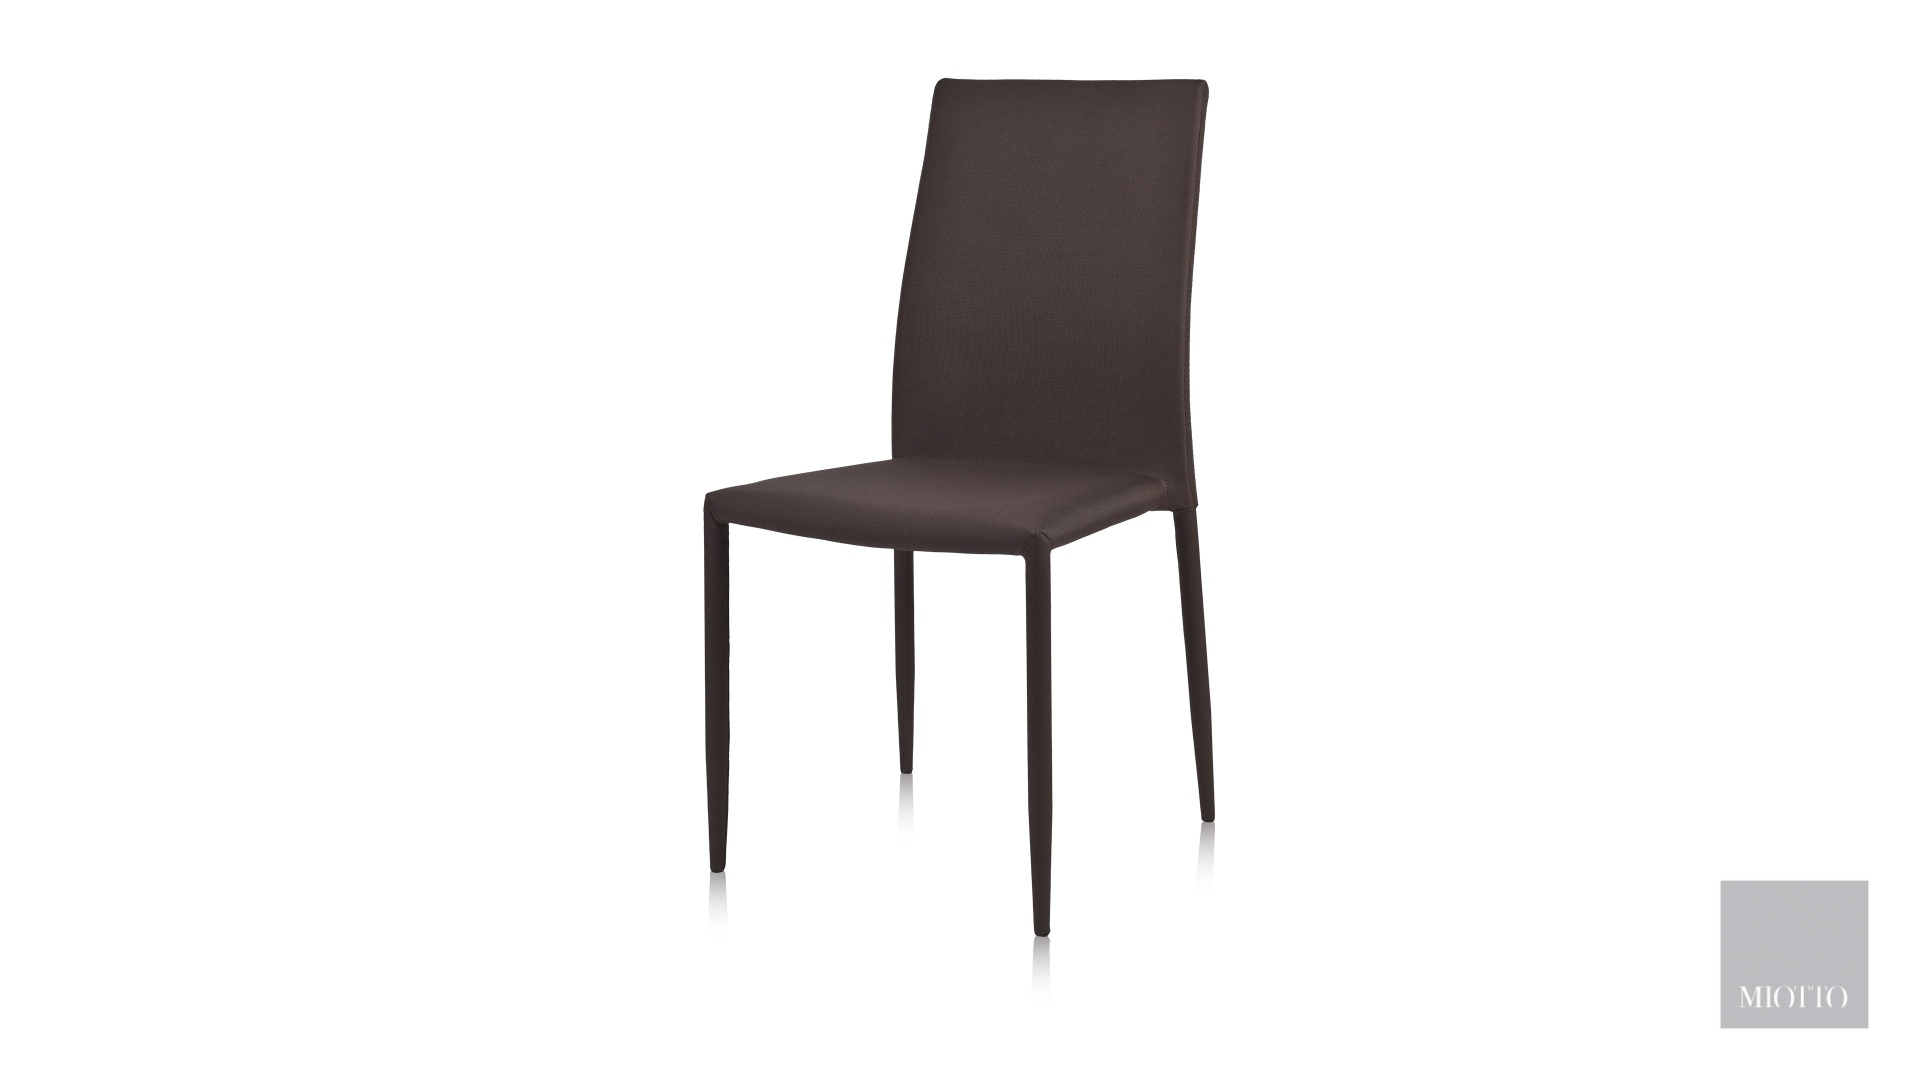 miotto_Lara fabric dining chair grey brown front miotto furniture